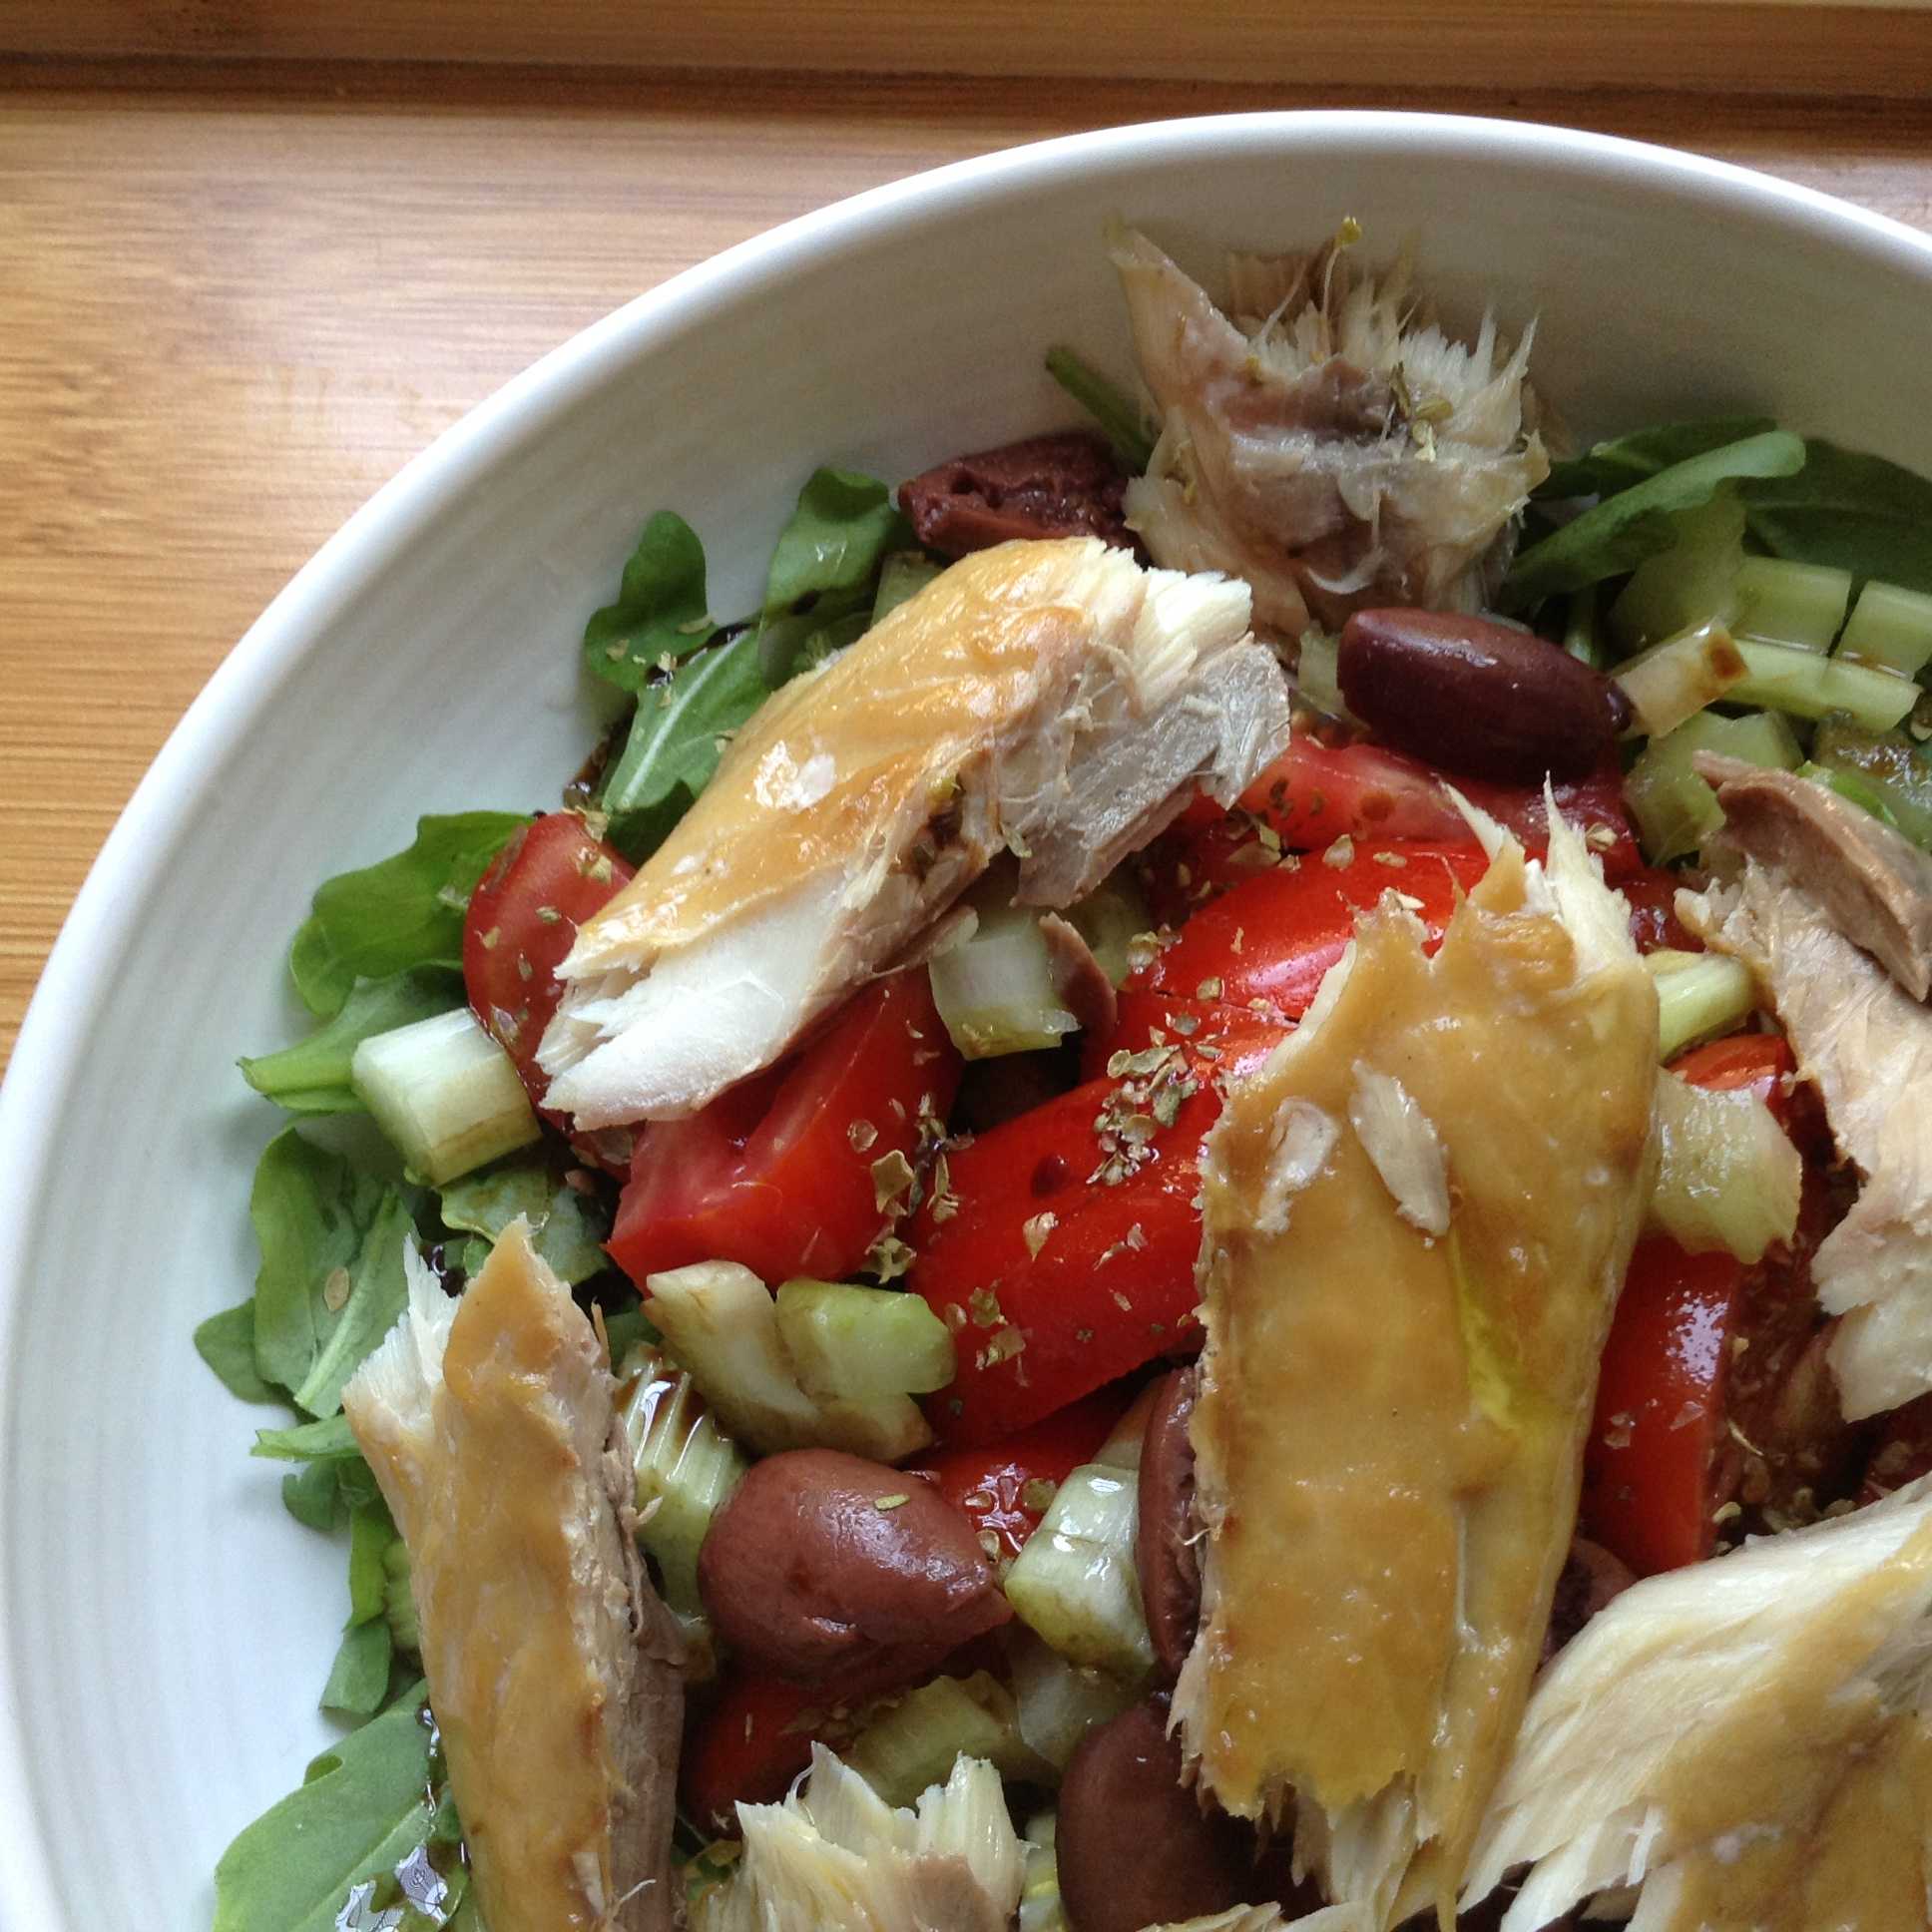 Mackerel rainbow salad